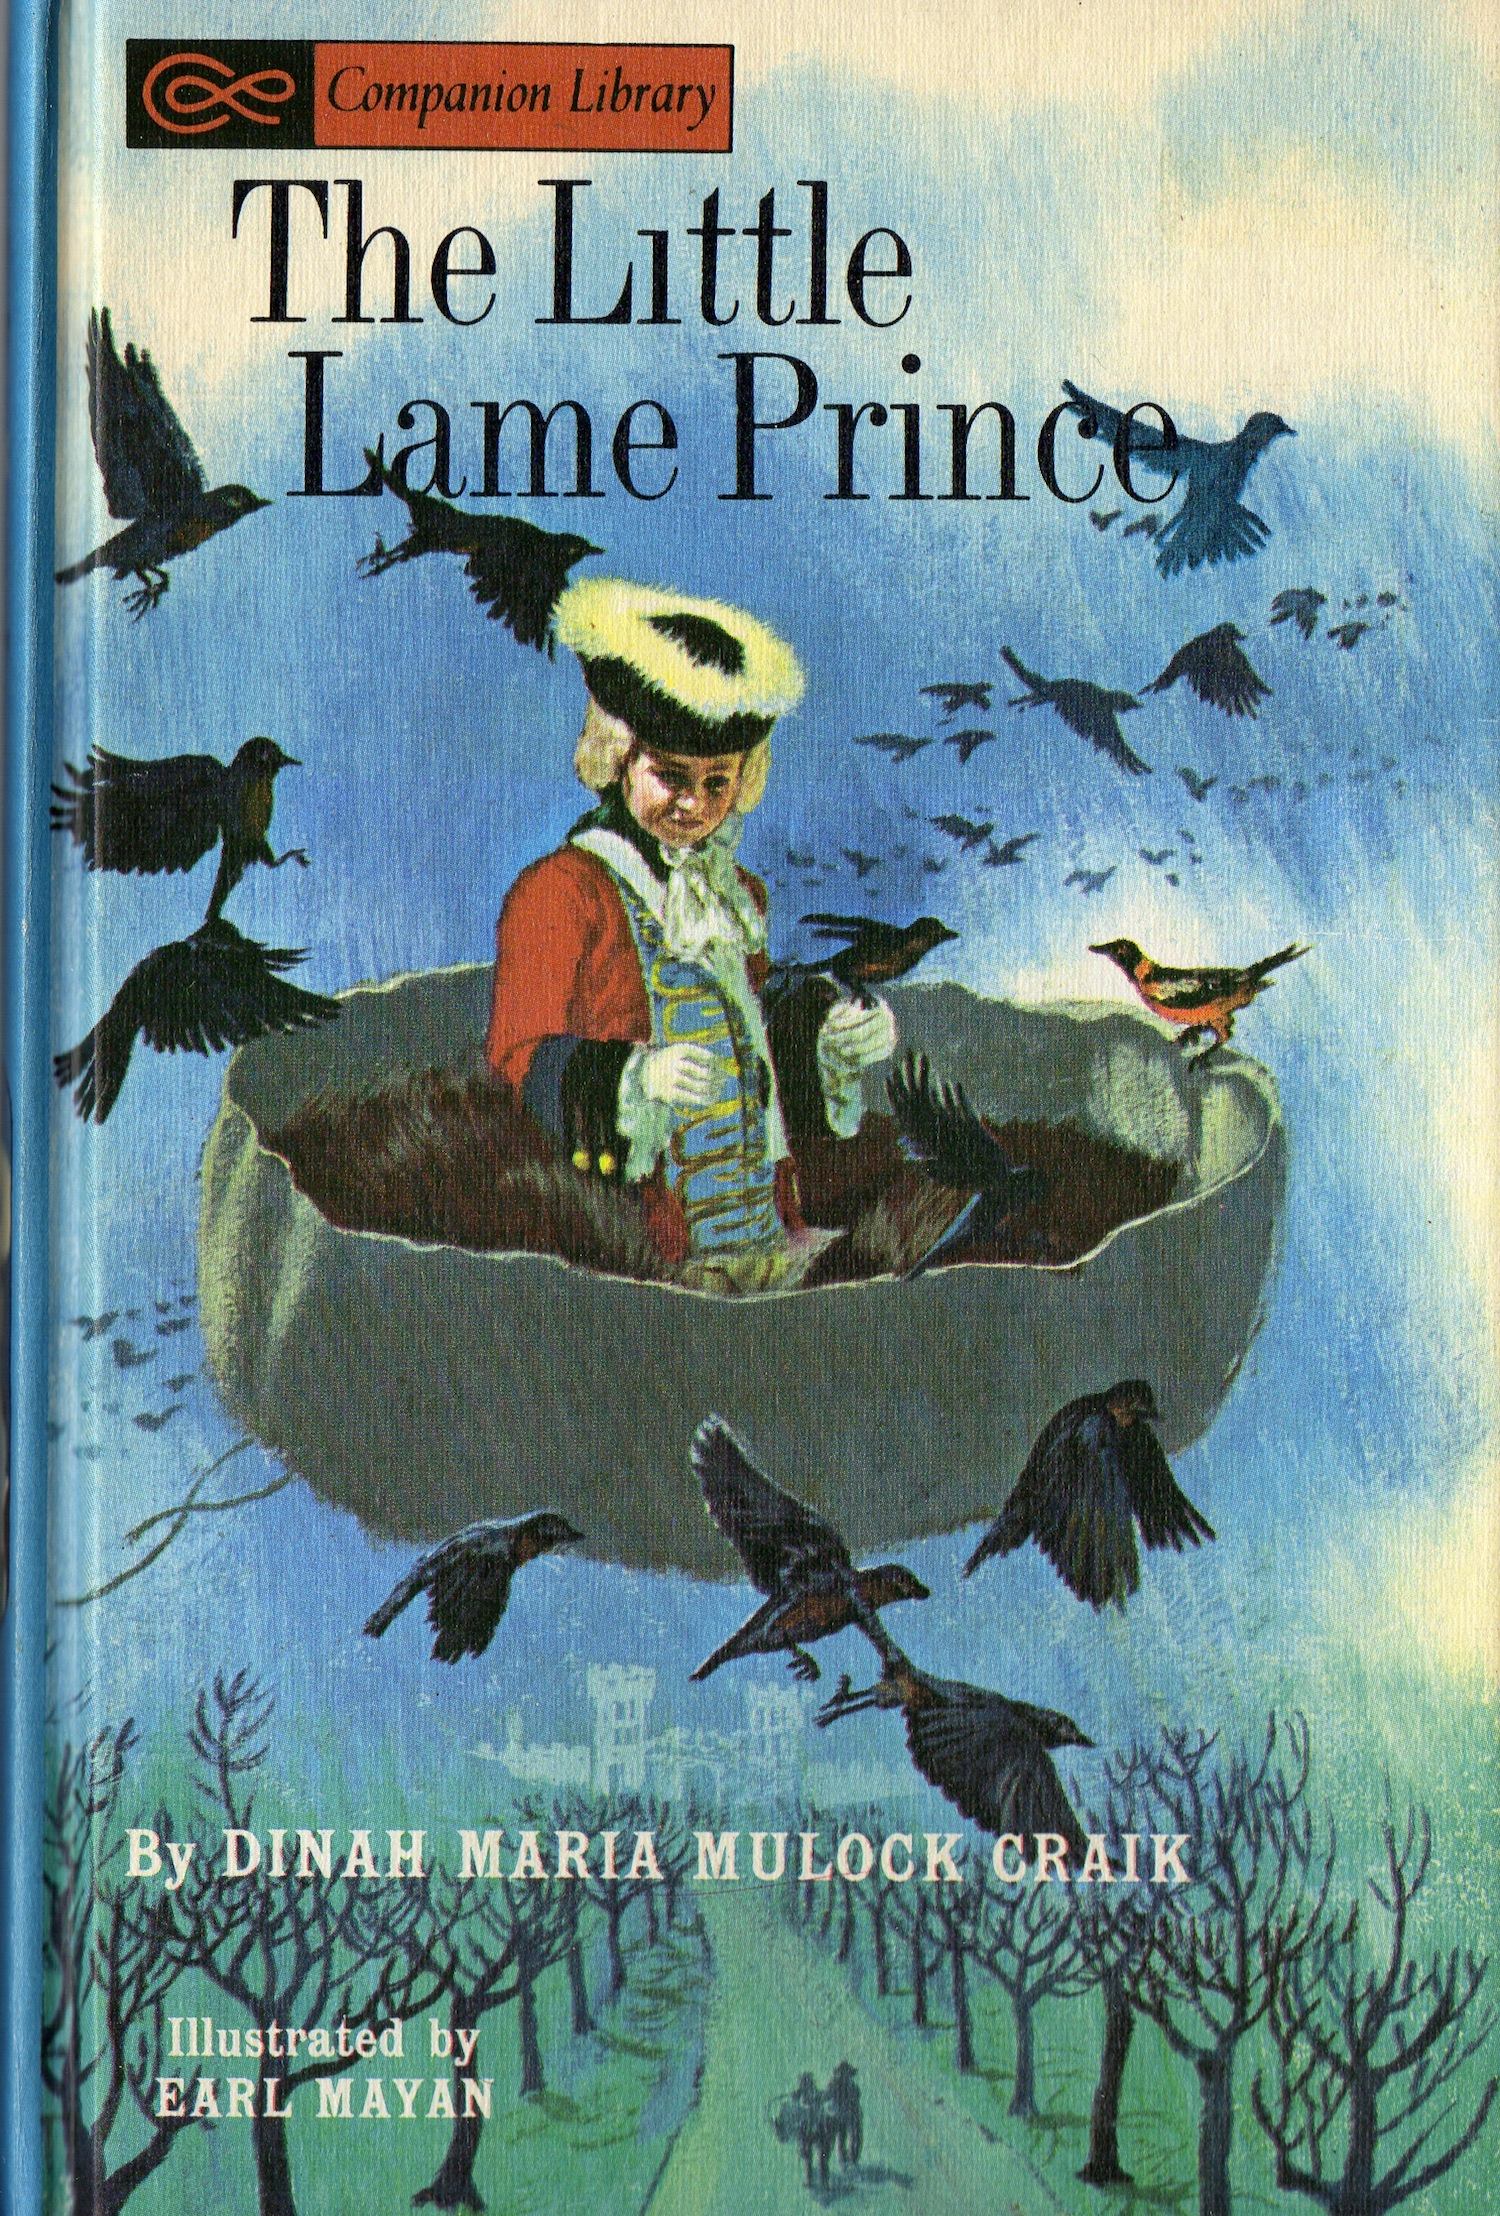 earl_mayan_little_lame_prince_cover.jpg